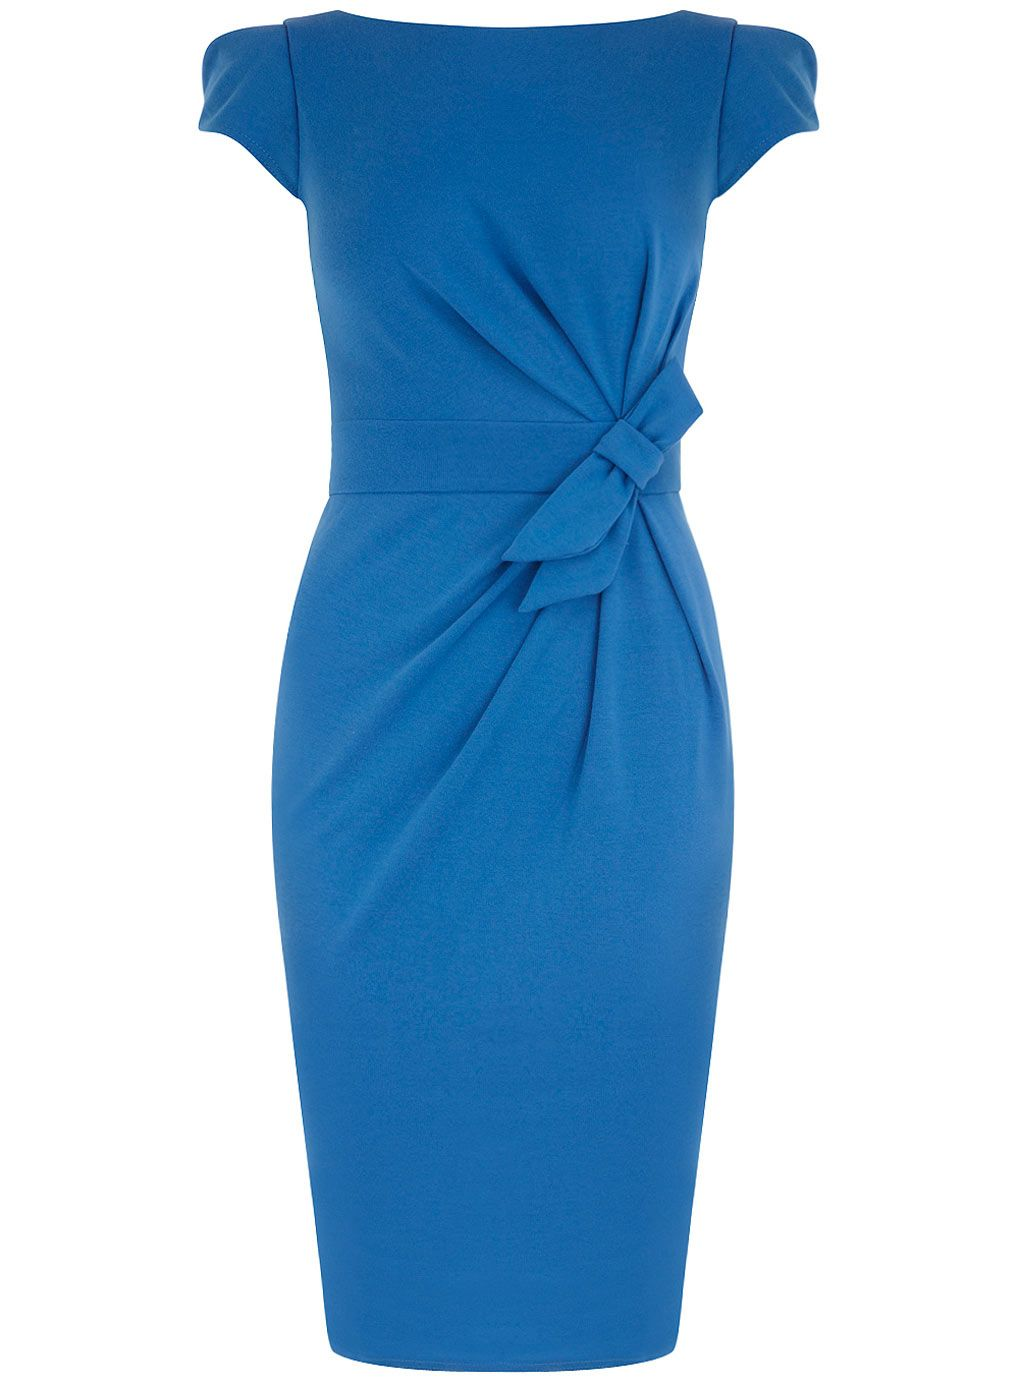 Blue bow detail ponte dress from Dorothy Perkins. #bluebridesmaid #weddingstyle